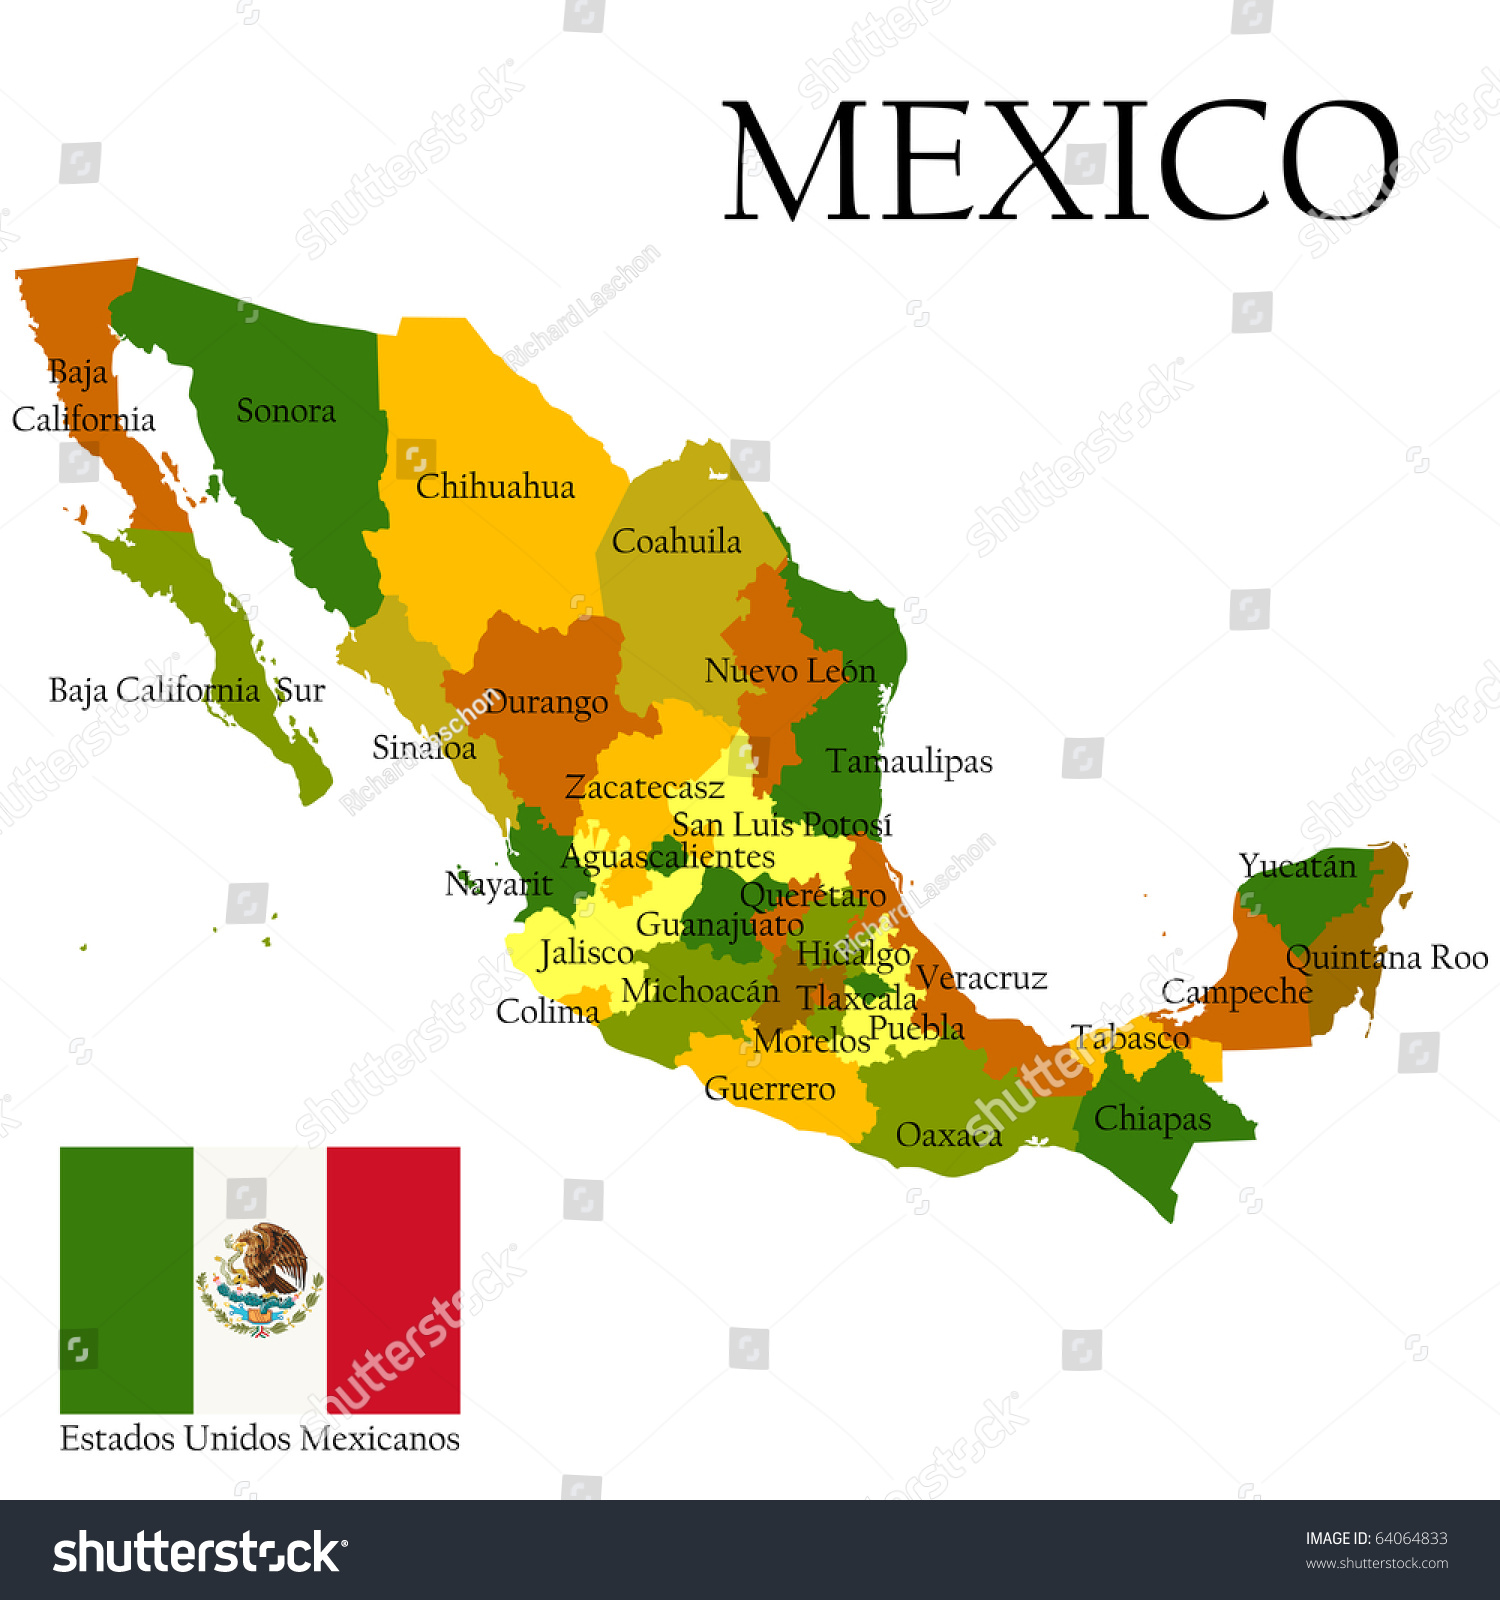 mexico united states of administrative map and flag. mexico united states of administrative map stock illustration